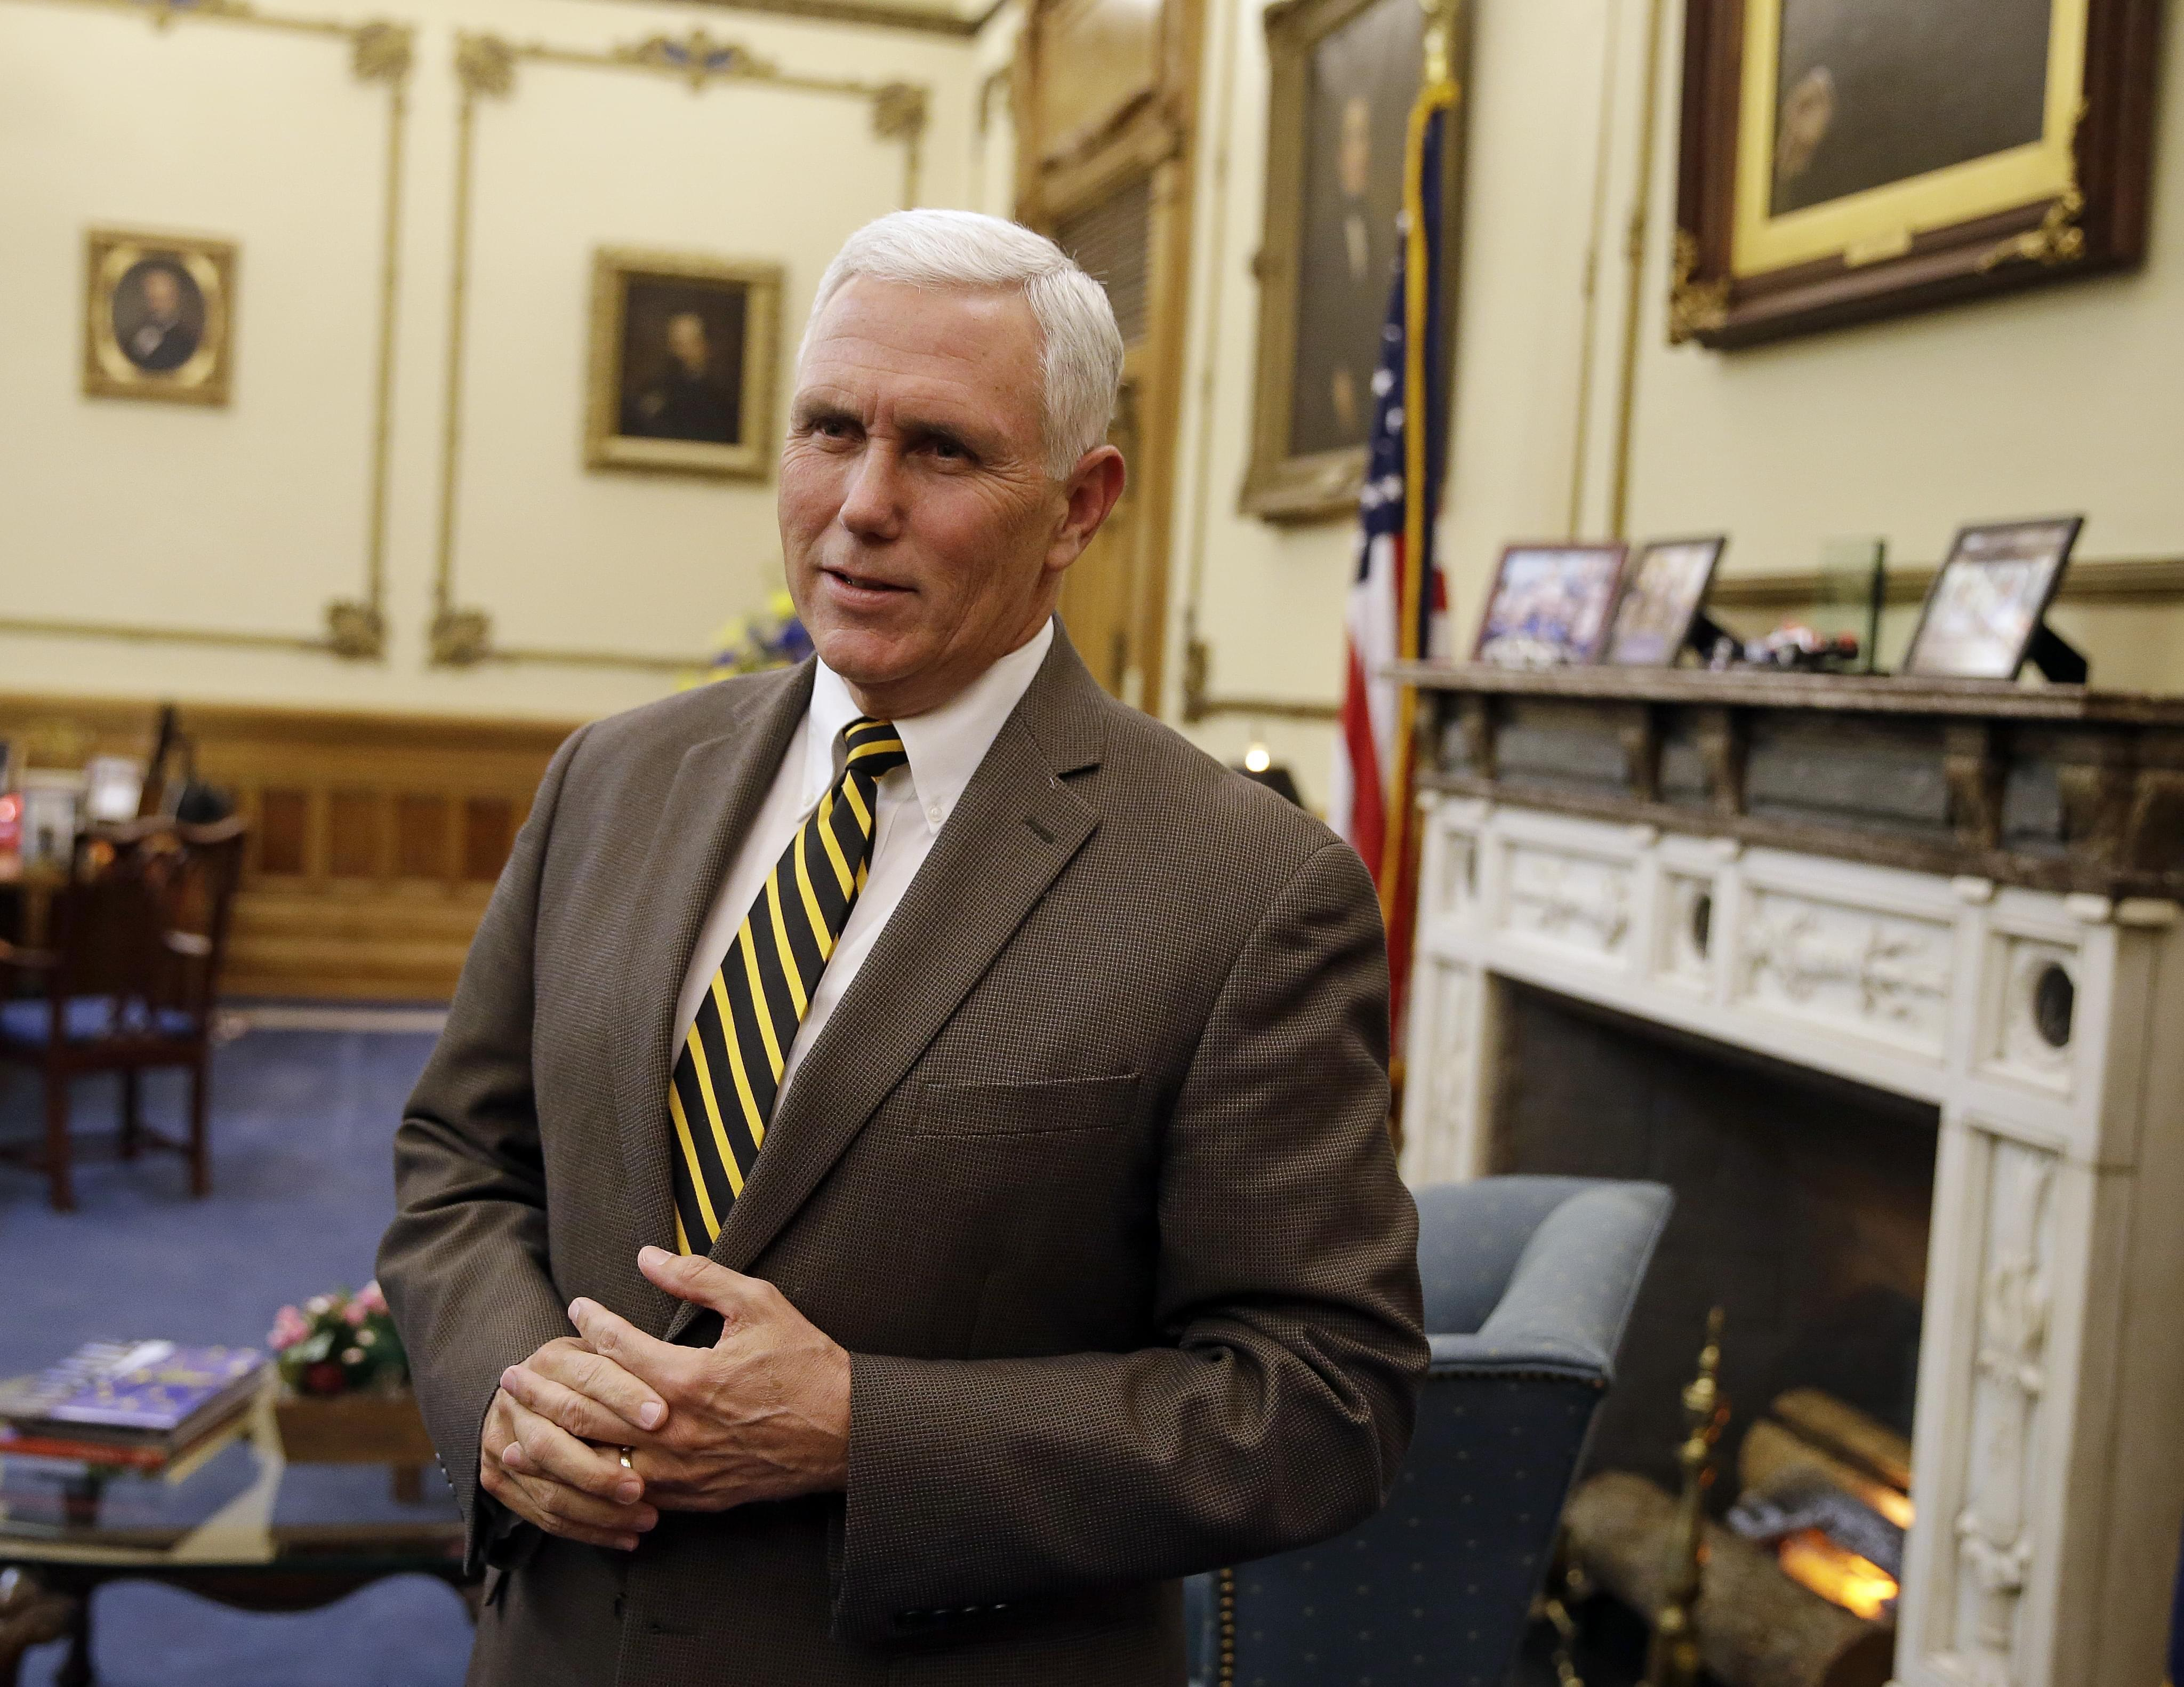 Indiana Gov. Mike Pence speaks after a meeting with Indianapolis Archbishop Joseph Tobin at the Statehouse Wednesday, Dec. 2, 2015, in Indianapolis, a day after the archdiocese said it has the means to resettle a Syrian refugee family bound for the s